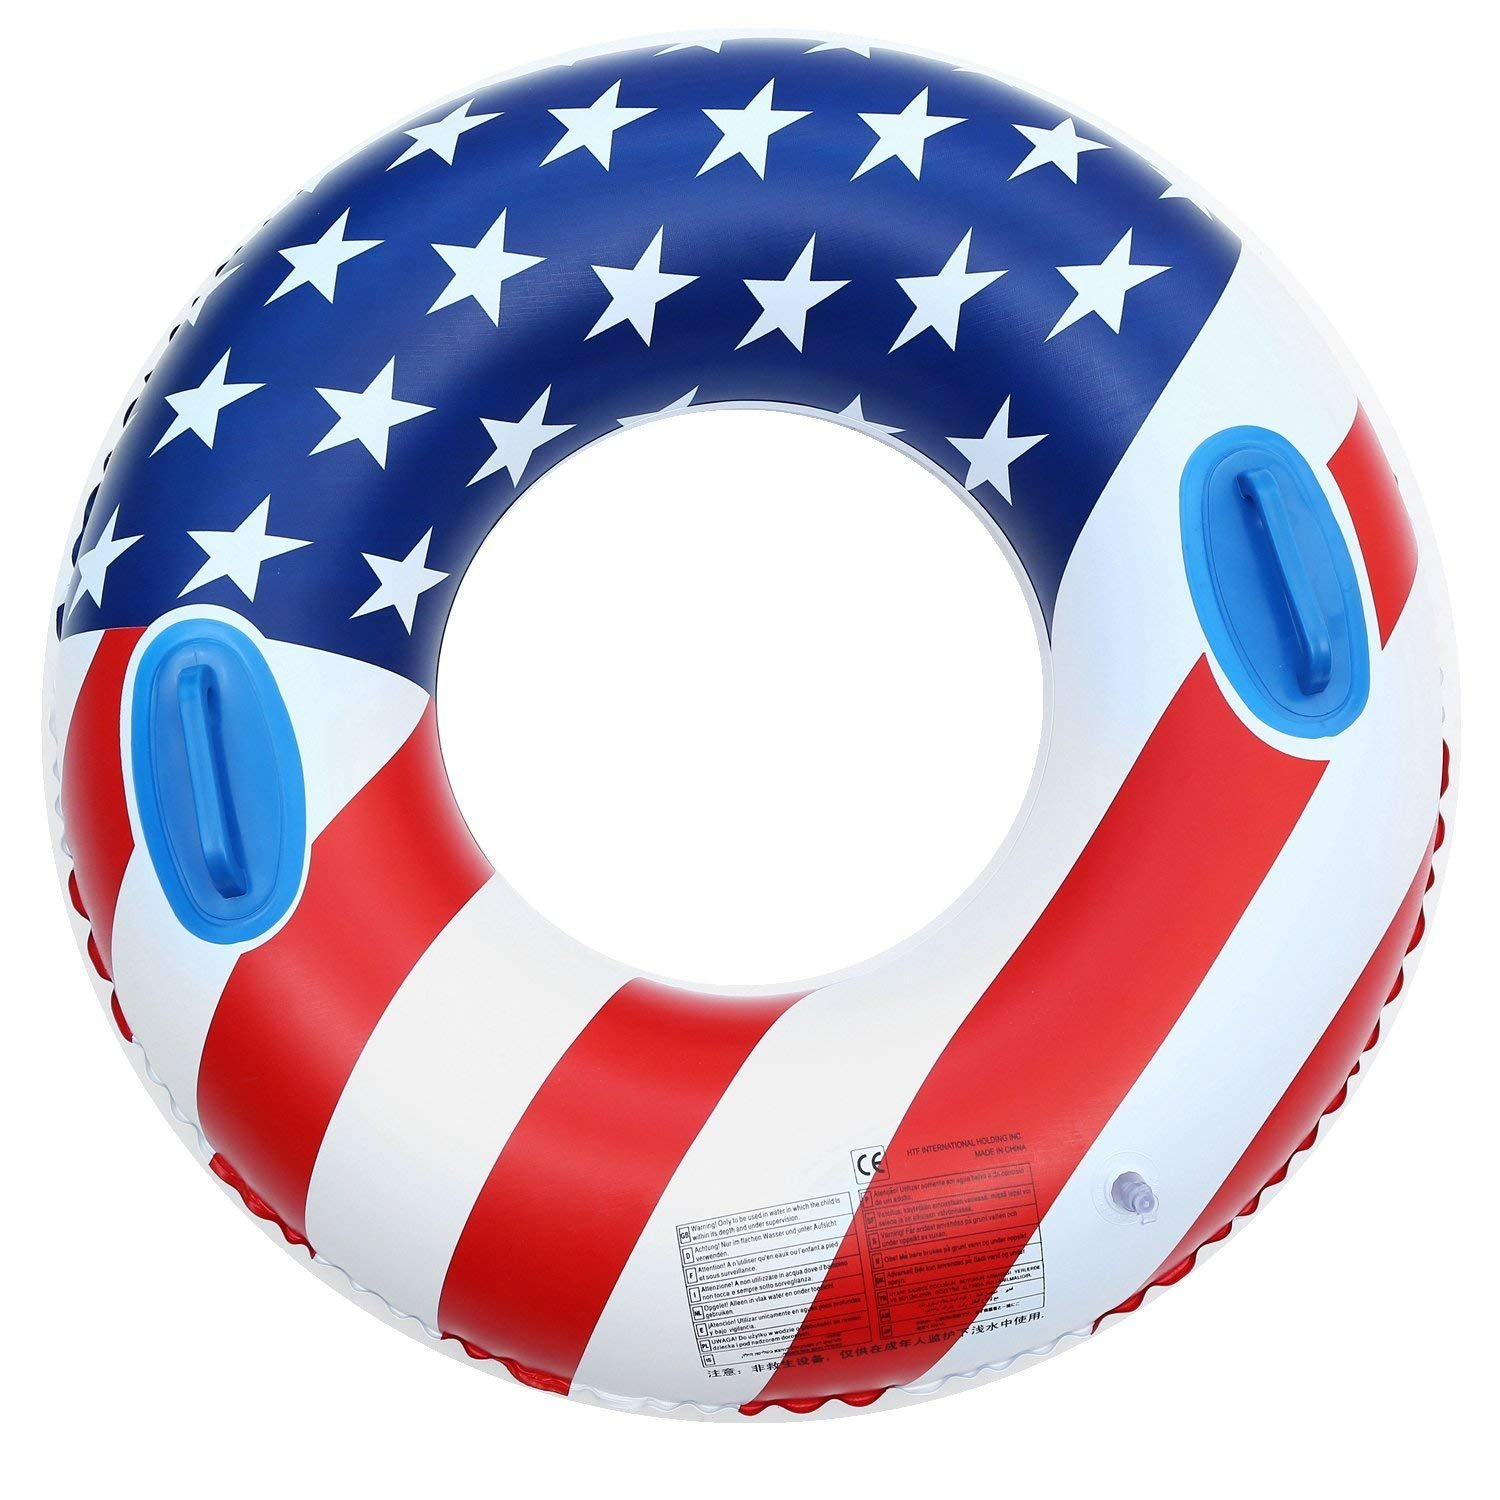 Baifeng Swimming Inflatable Pool Floats,Giant Flag Swimming Ring Toys for Adults and Kids, Summer Beach Funny Water Large Float Pool 35.4''(Random style)